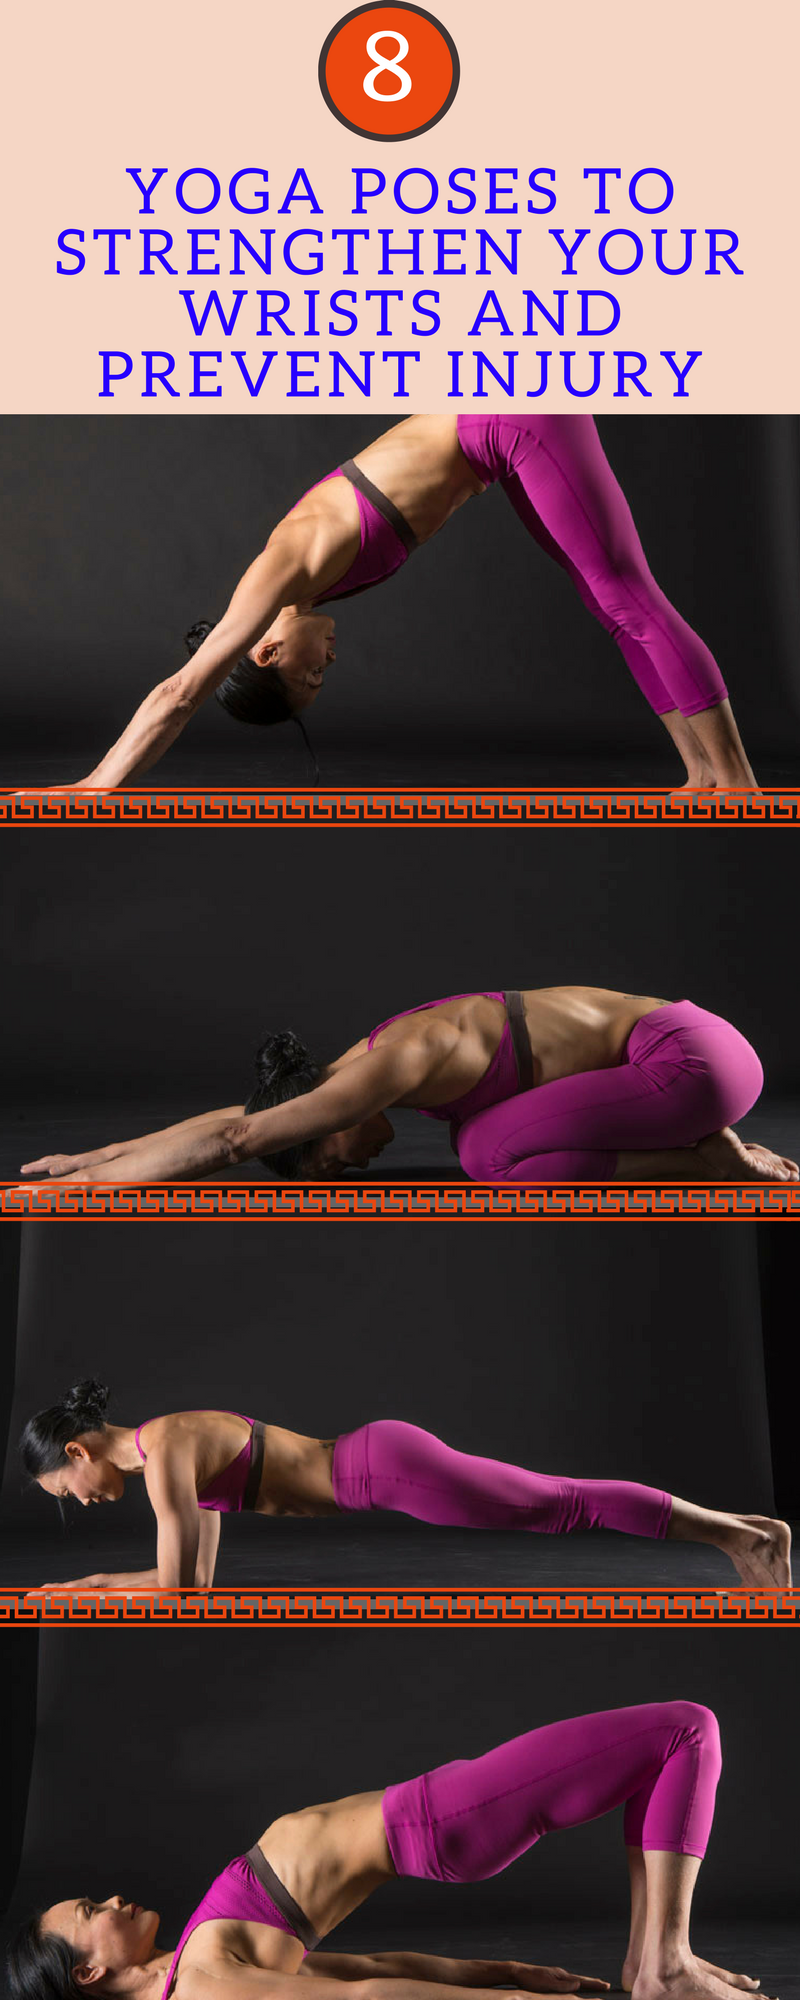 yoga poses to strenghten your wrist